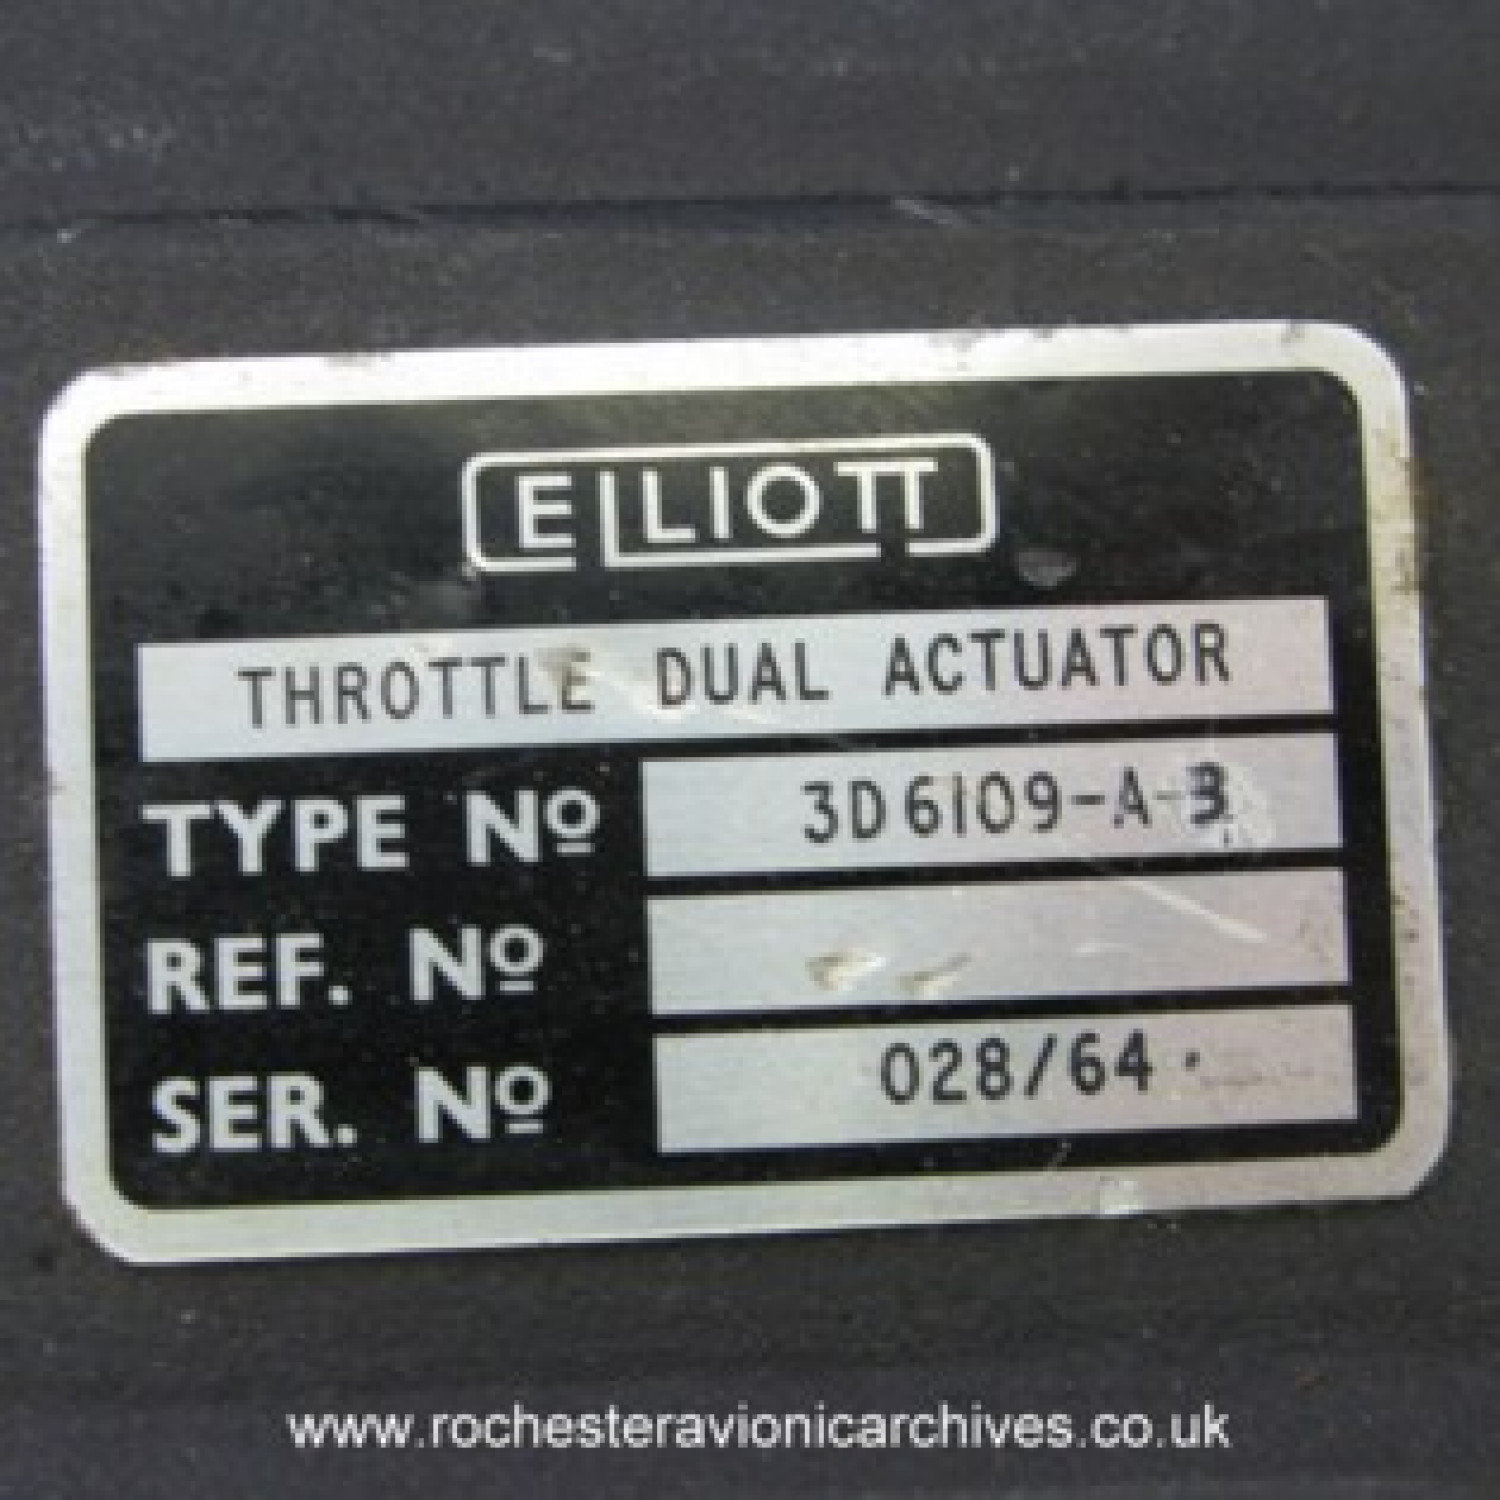 Throttle Dual Actuator